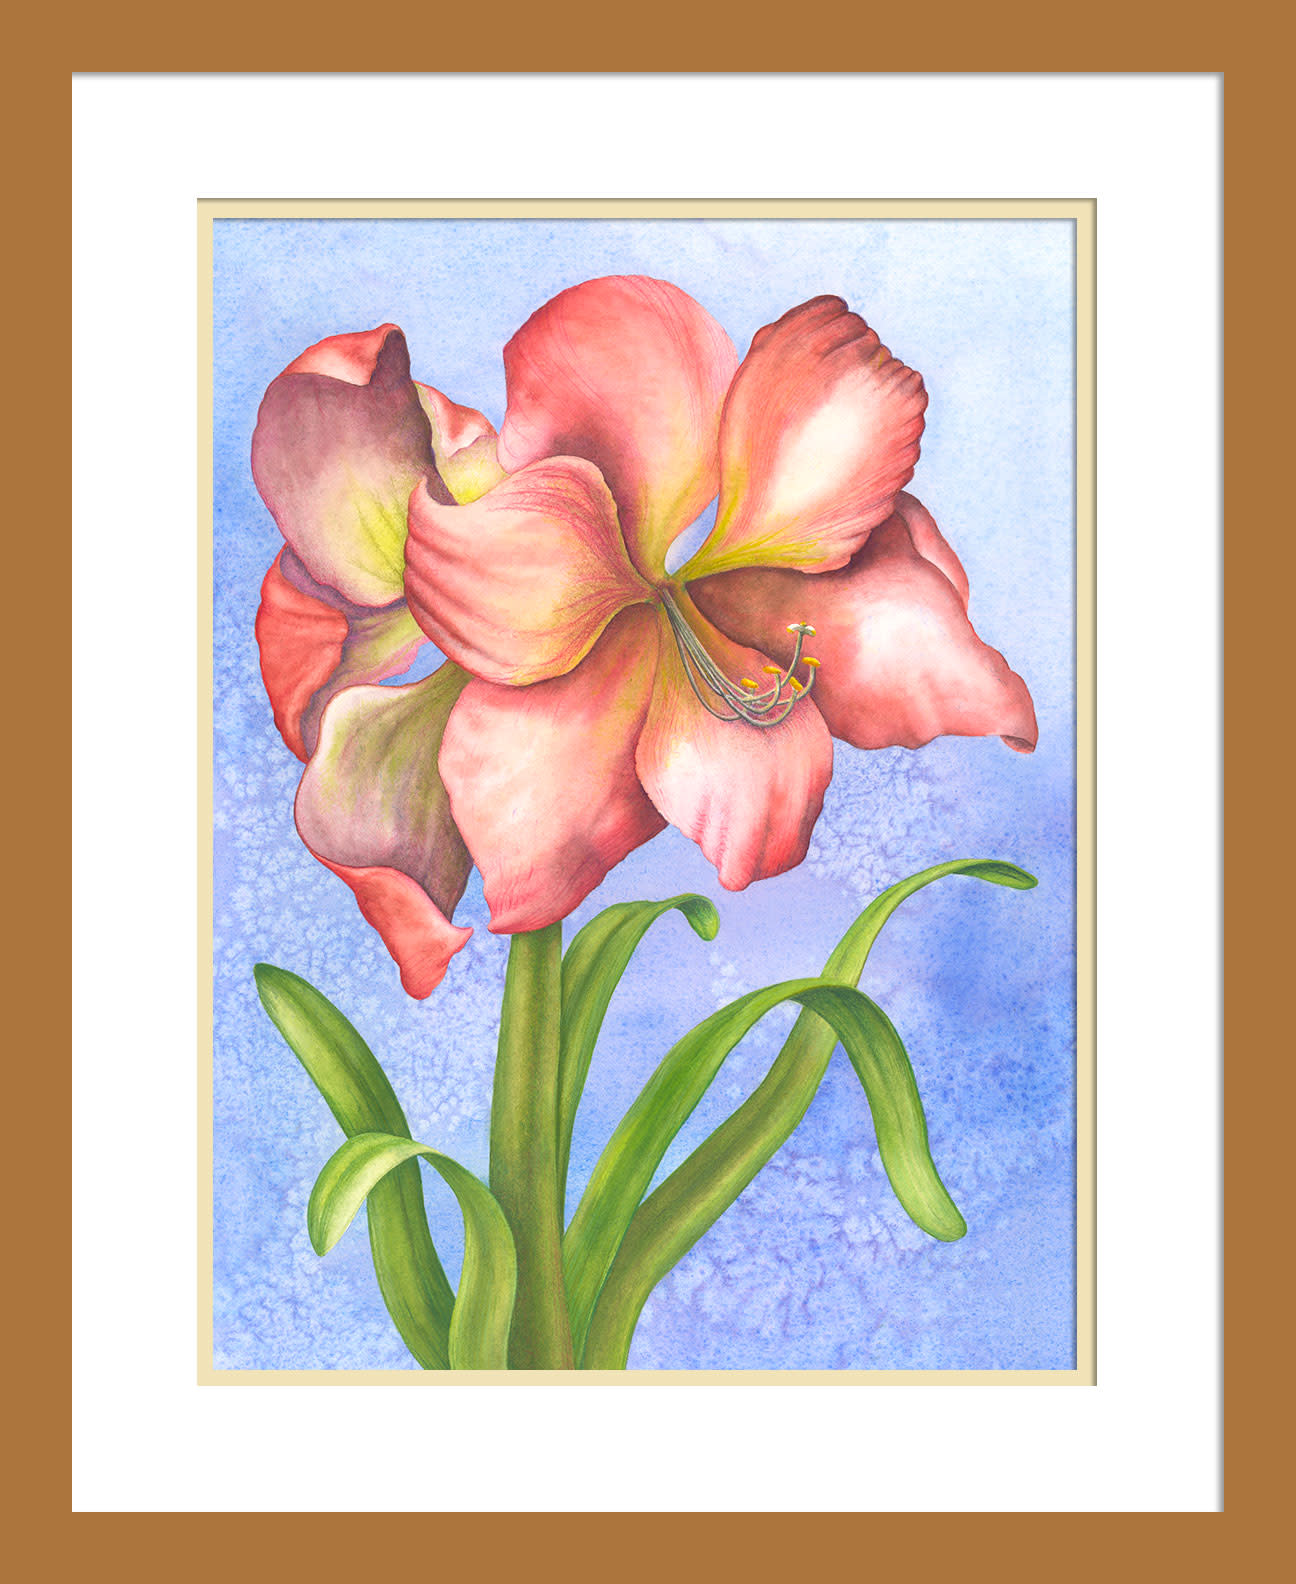 040402 hippeastrum 12x16 matted in 16x20 frame bod4ck